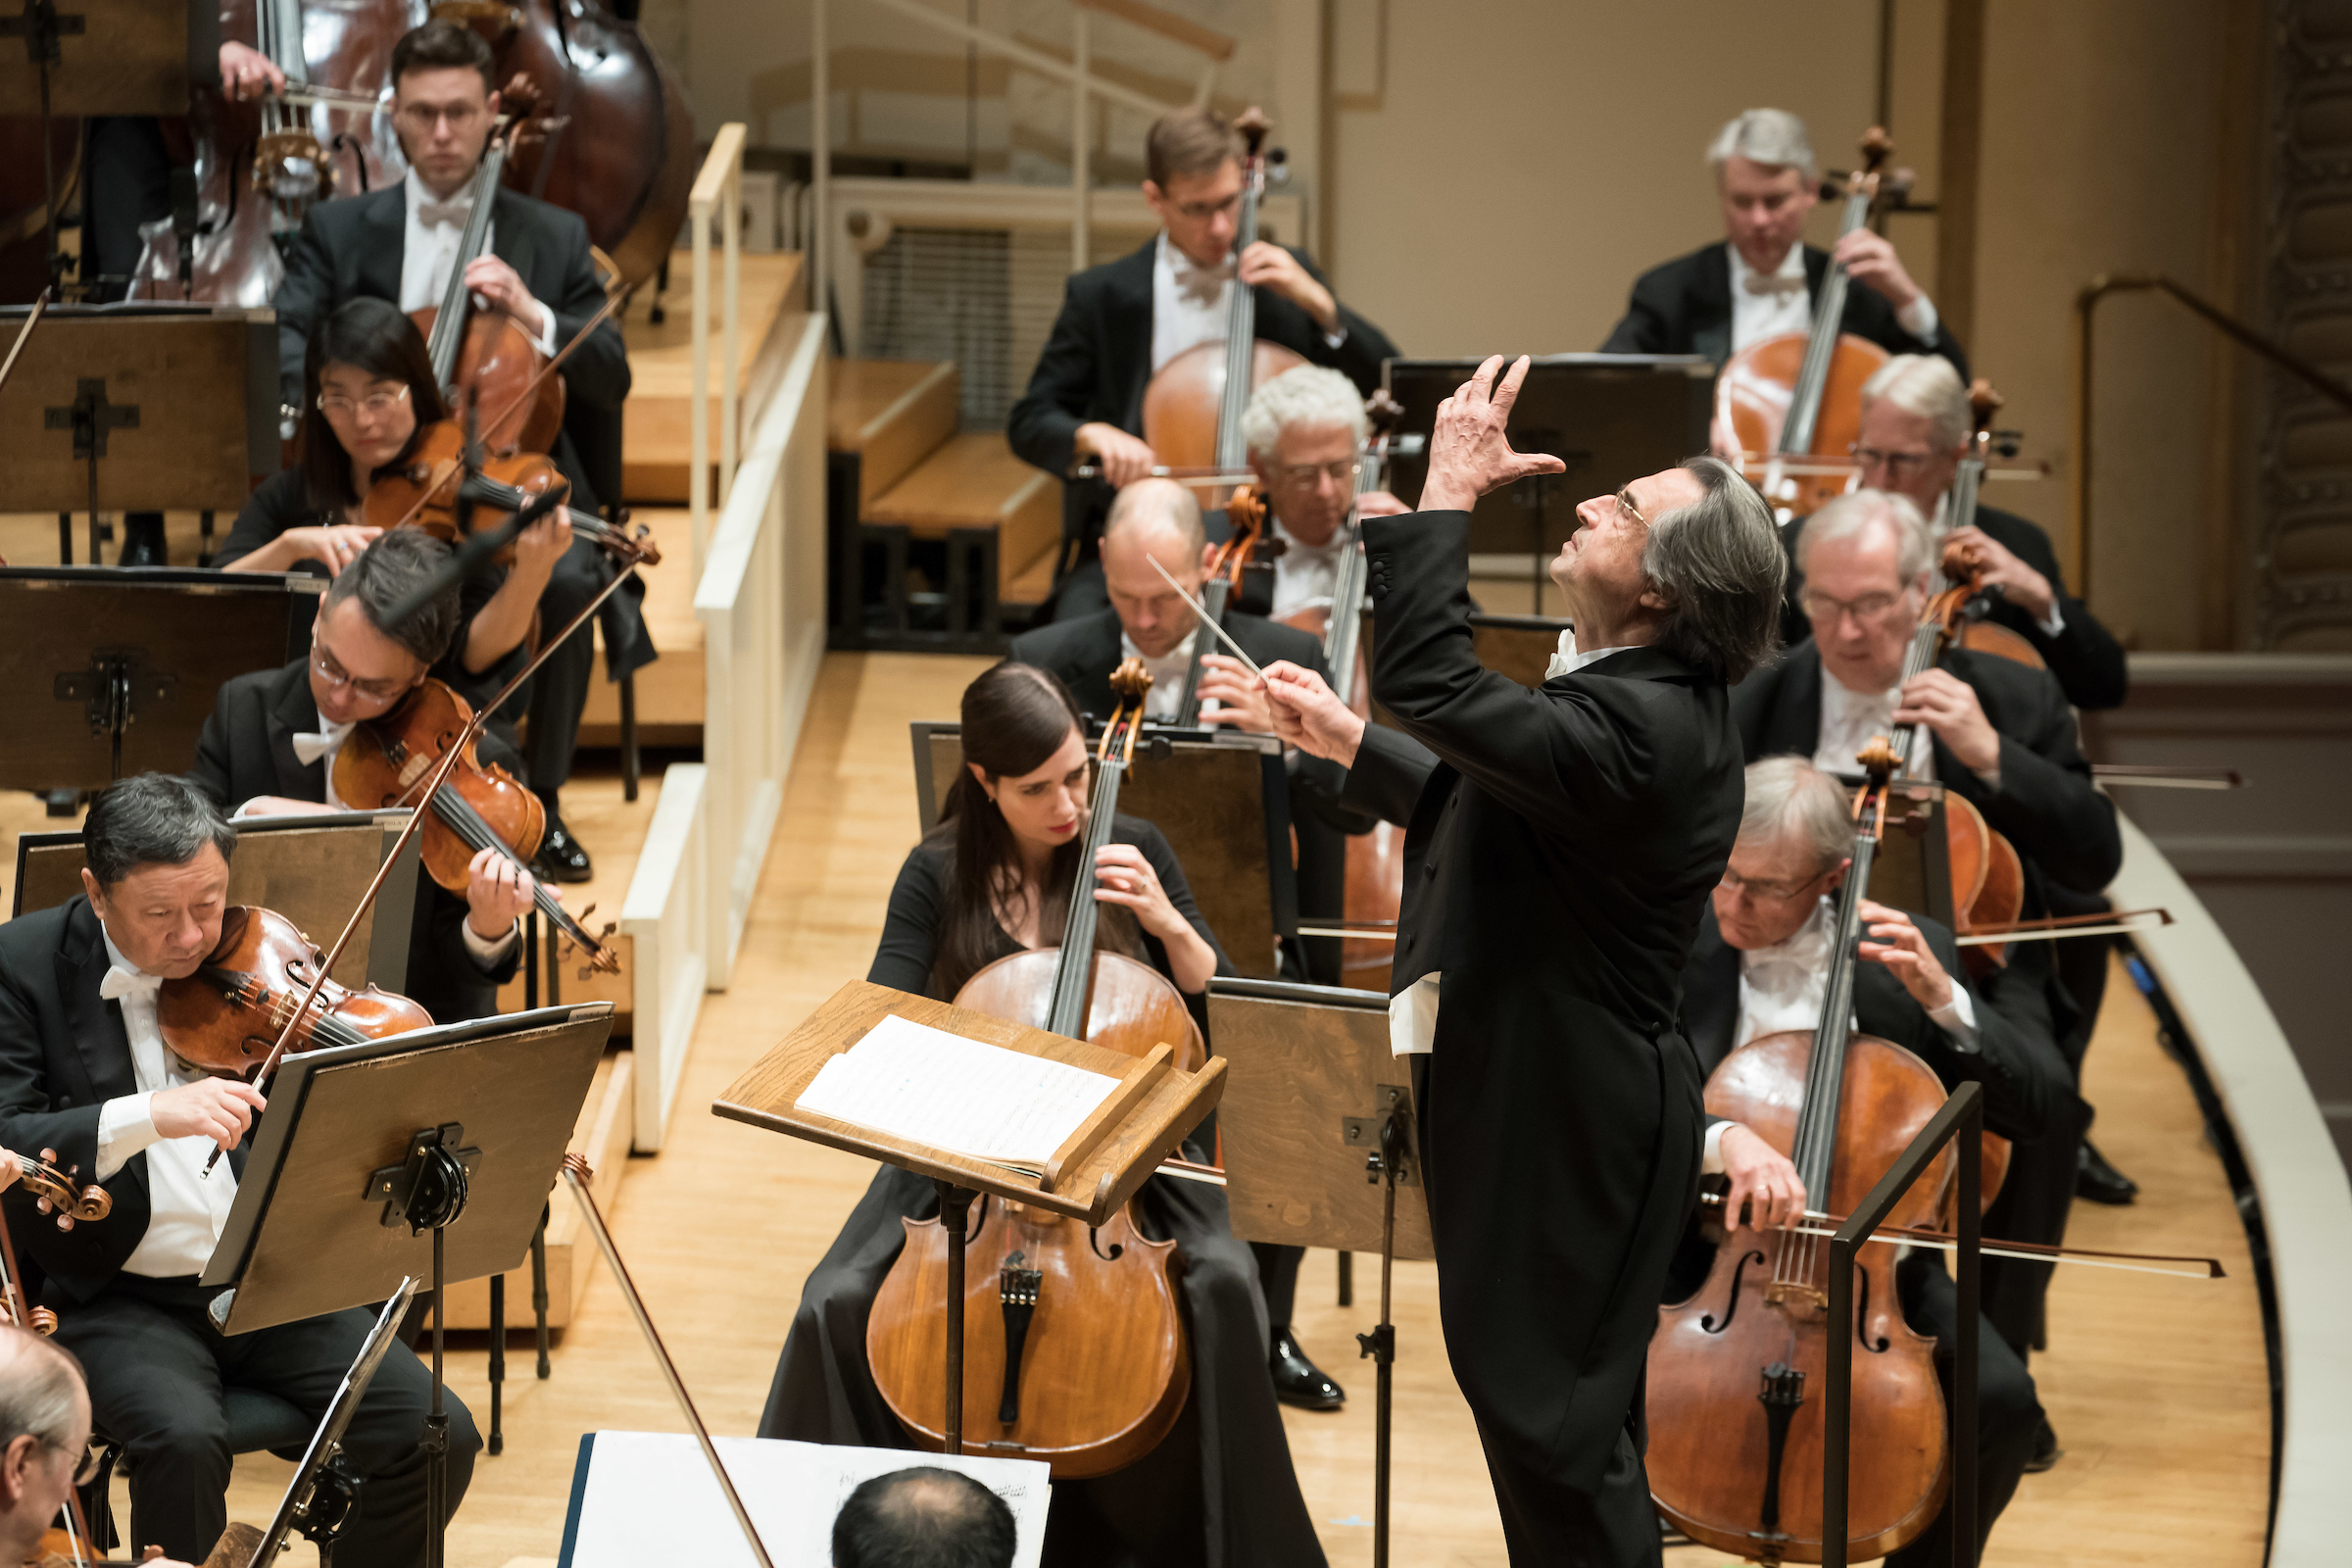 Maestro Riccardo Muti conducts the Chicago Symphony Orchestra on Thursday night at Orchestra Hall.